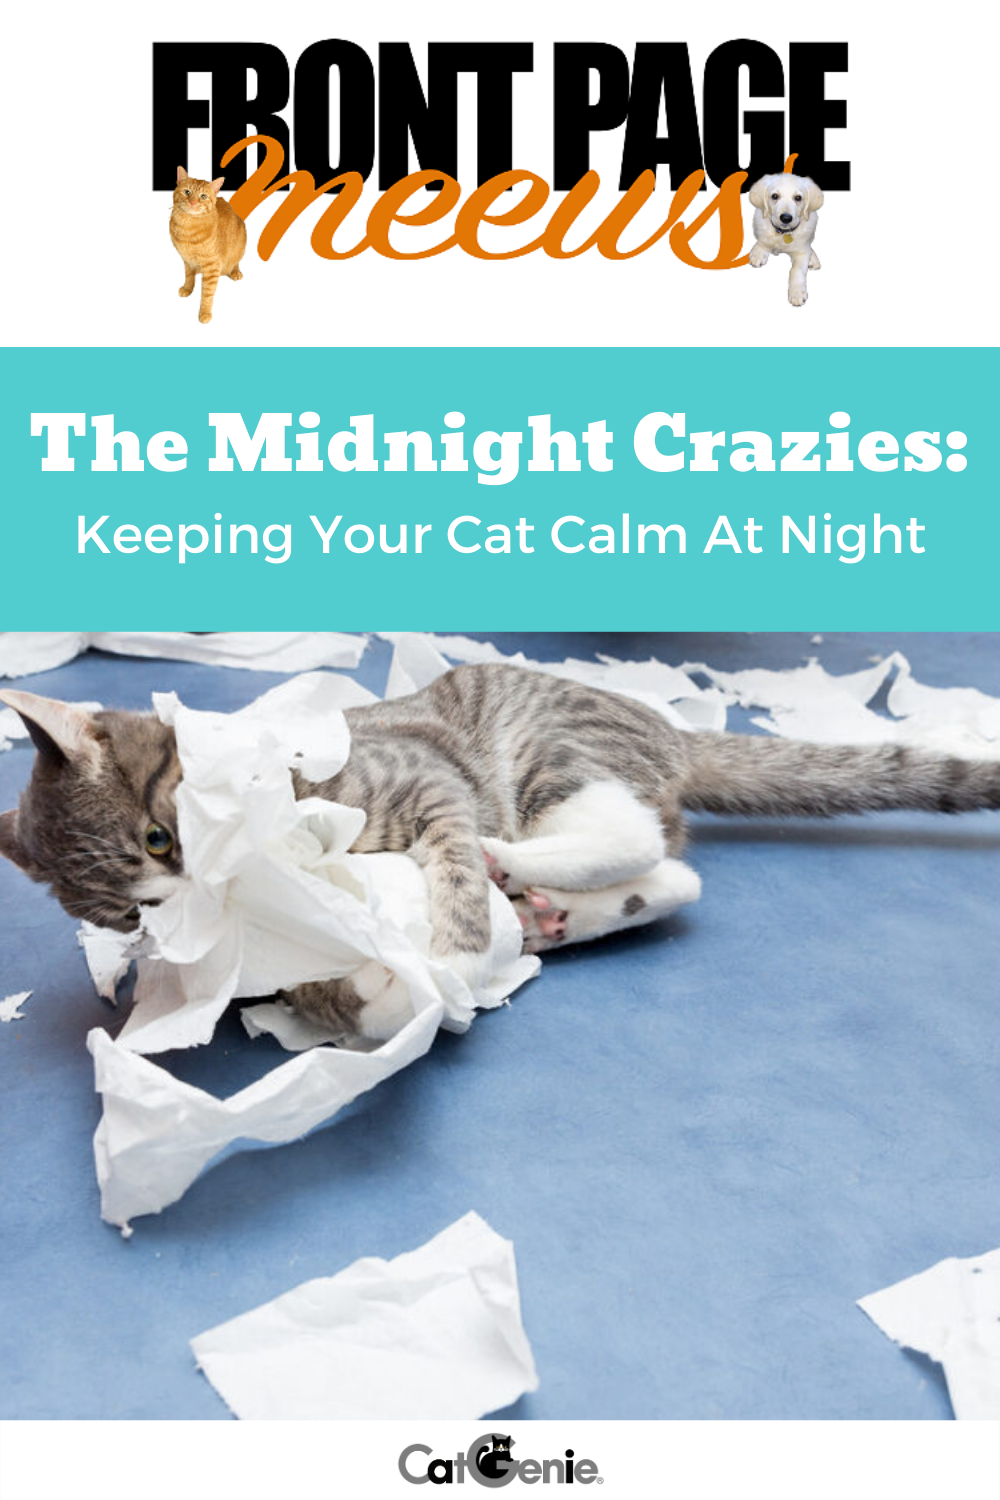 Getting To Sleep Is Hard Enough These Days But What Is The Cutest Thing That Could Possibly Keep You Awake All Night O Cat Behavior Cats Cat Sleeping